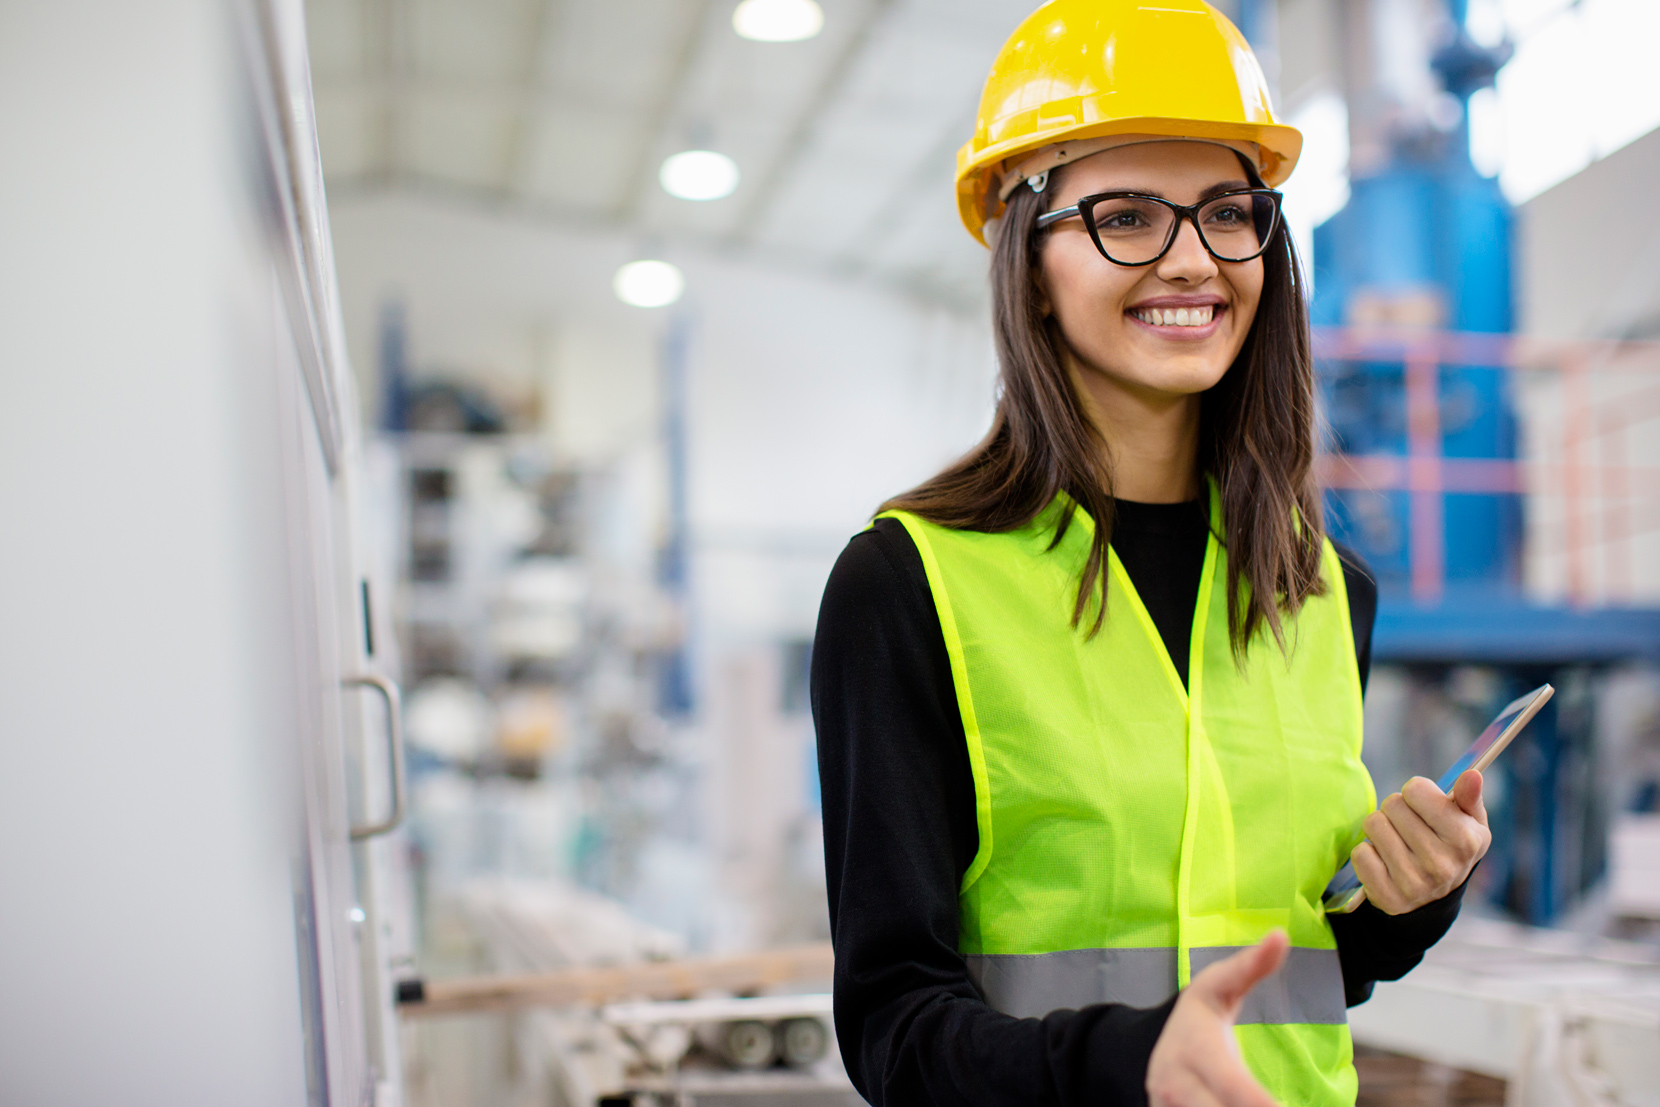 Microsoft F1 Firstleine or Frontline Worker, female with glasses smiling while wearing a yellow hard hat.